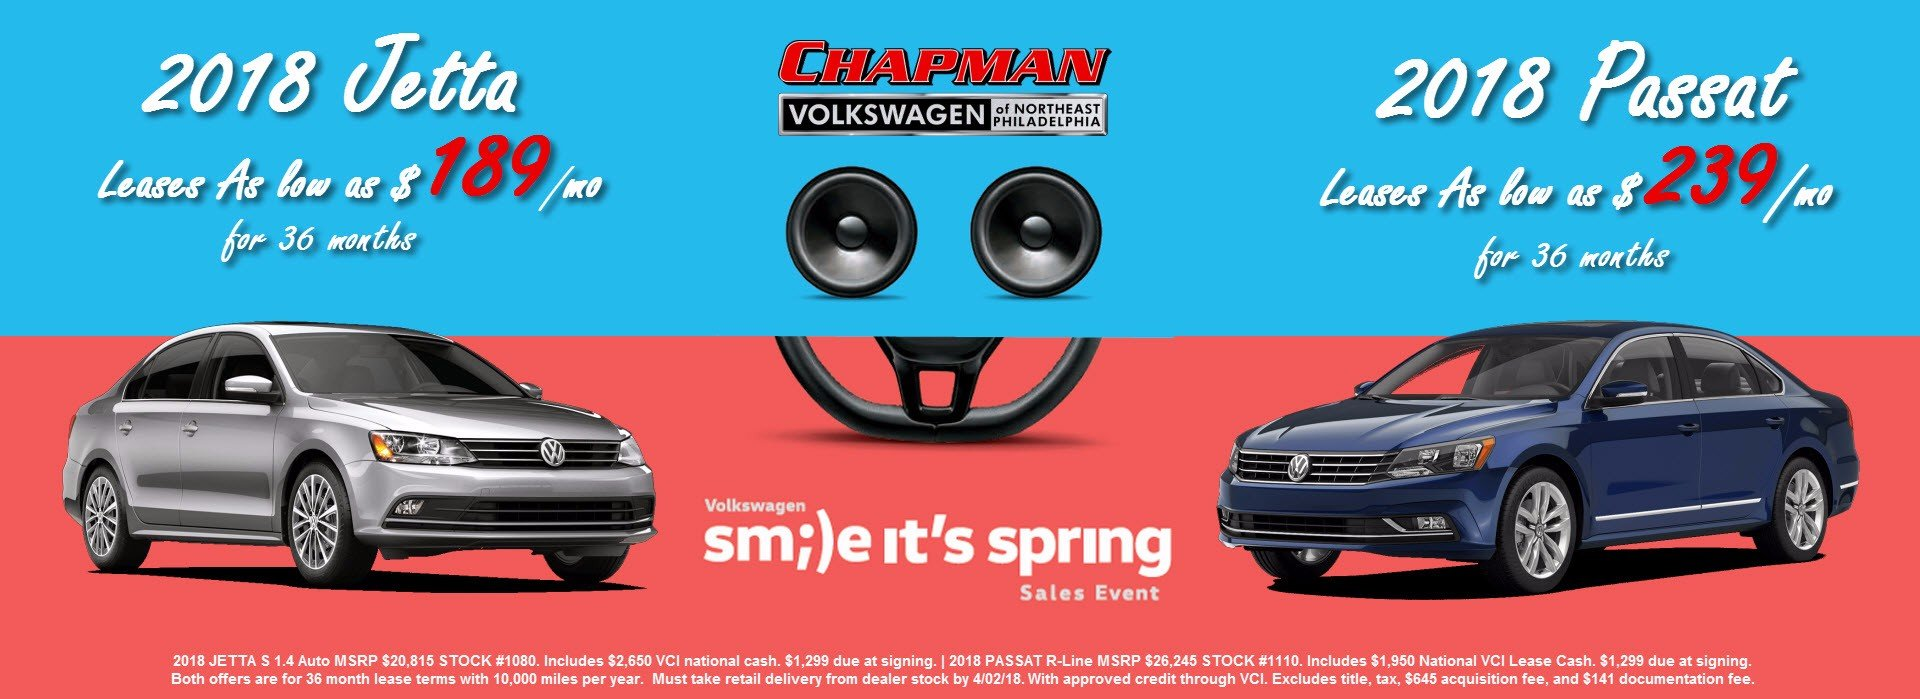 sm;)e it's spring Sales Event lease offers are here for your choice of a brand-new 2018 VW Jetta or Passat!